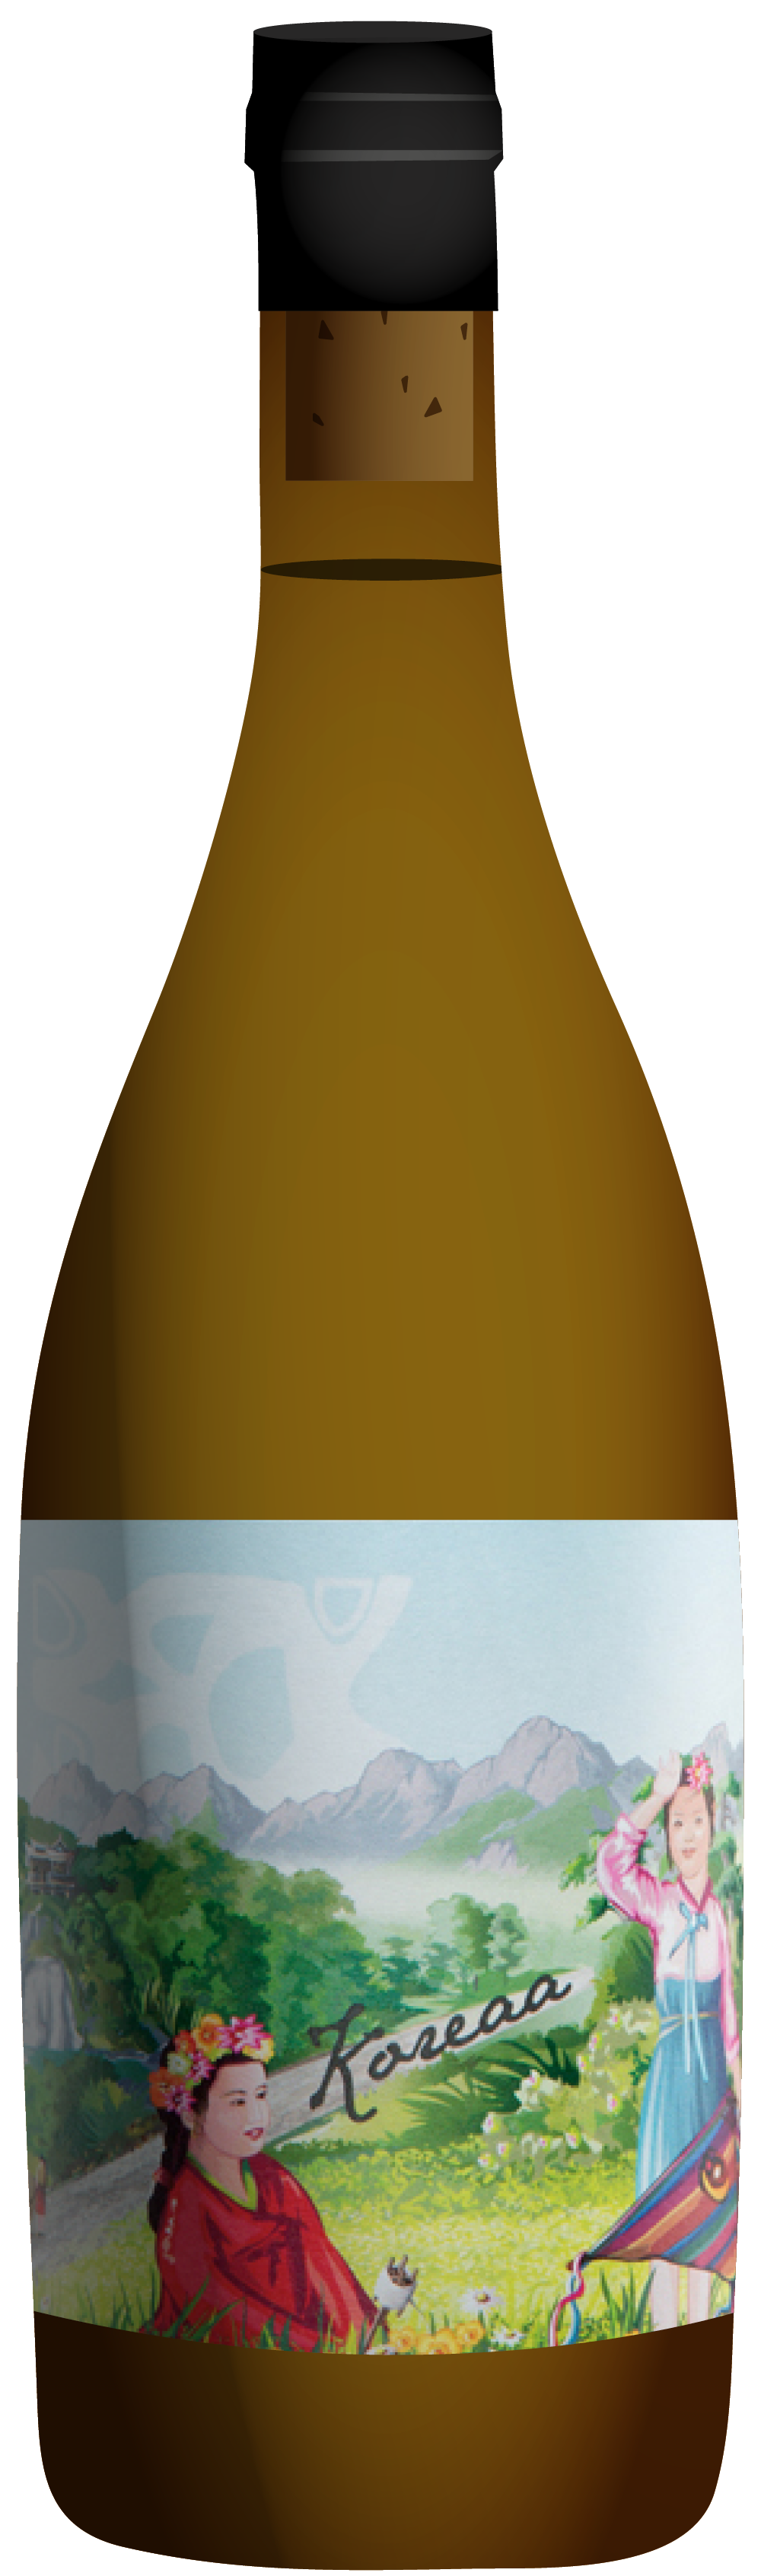 the natural wine company club august 2020 italy judith beck koreaa